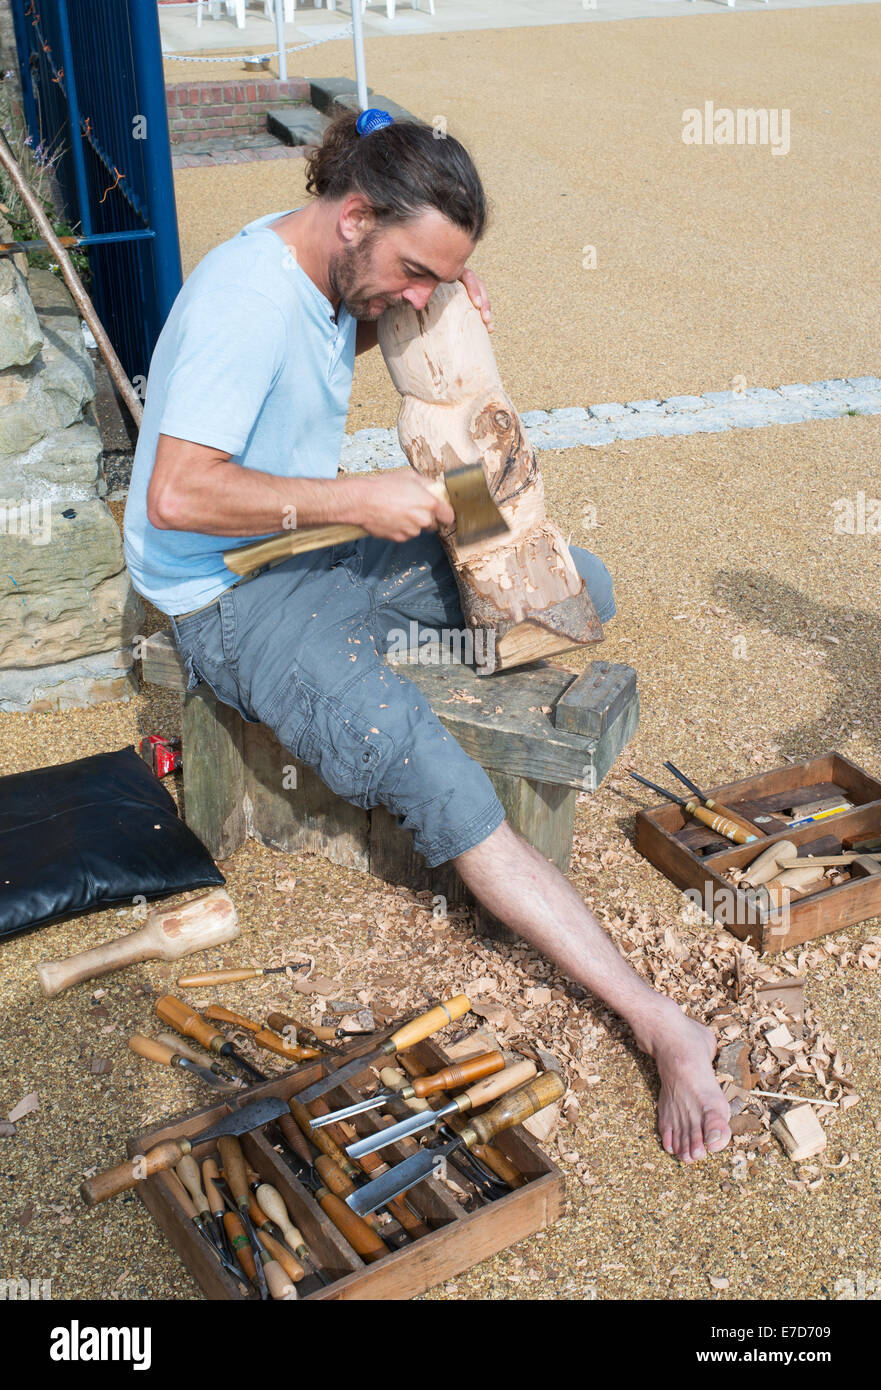 Sculptor Mark Crowley using an axe to carve a wooden Dolly or figurehead North Shields, North East, England, UK - Stock Image